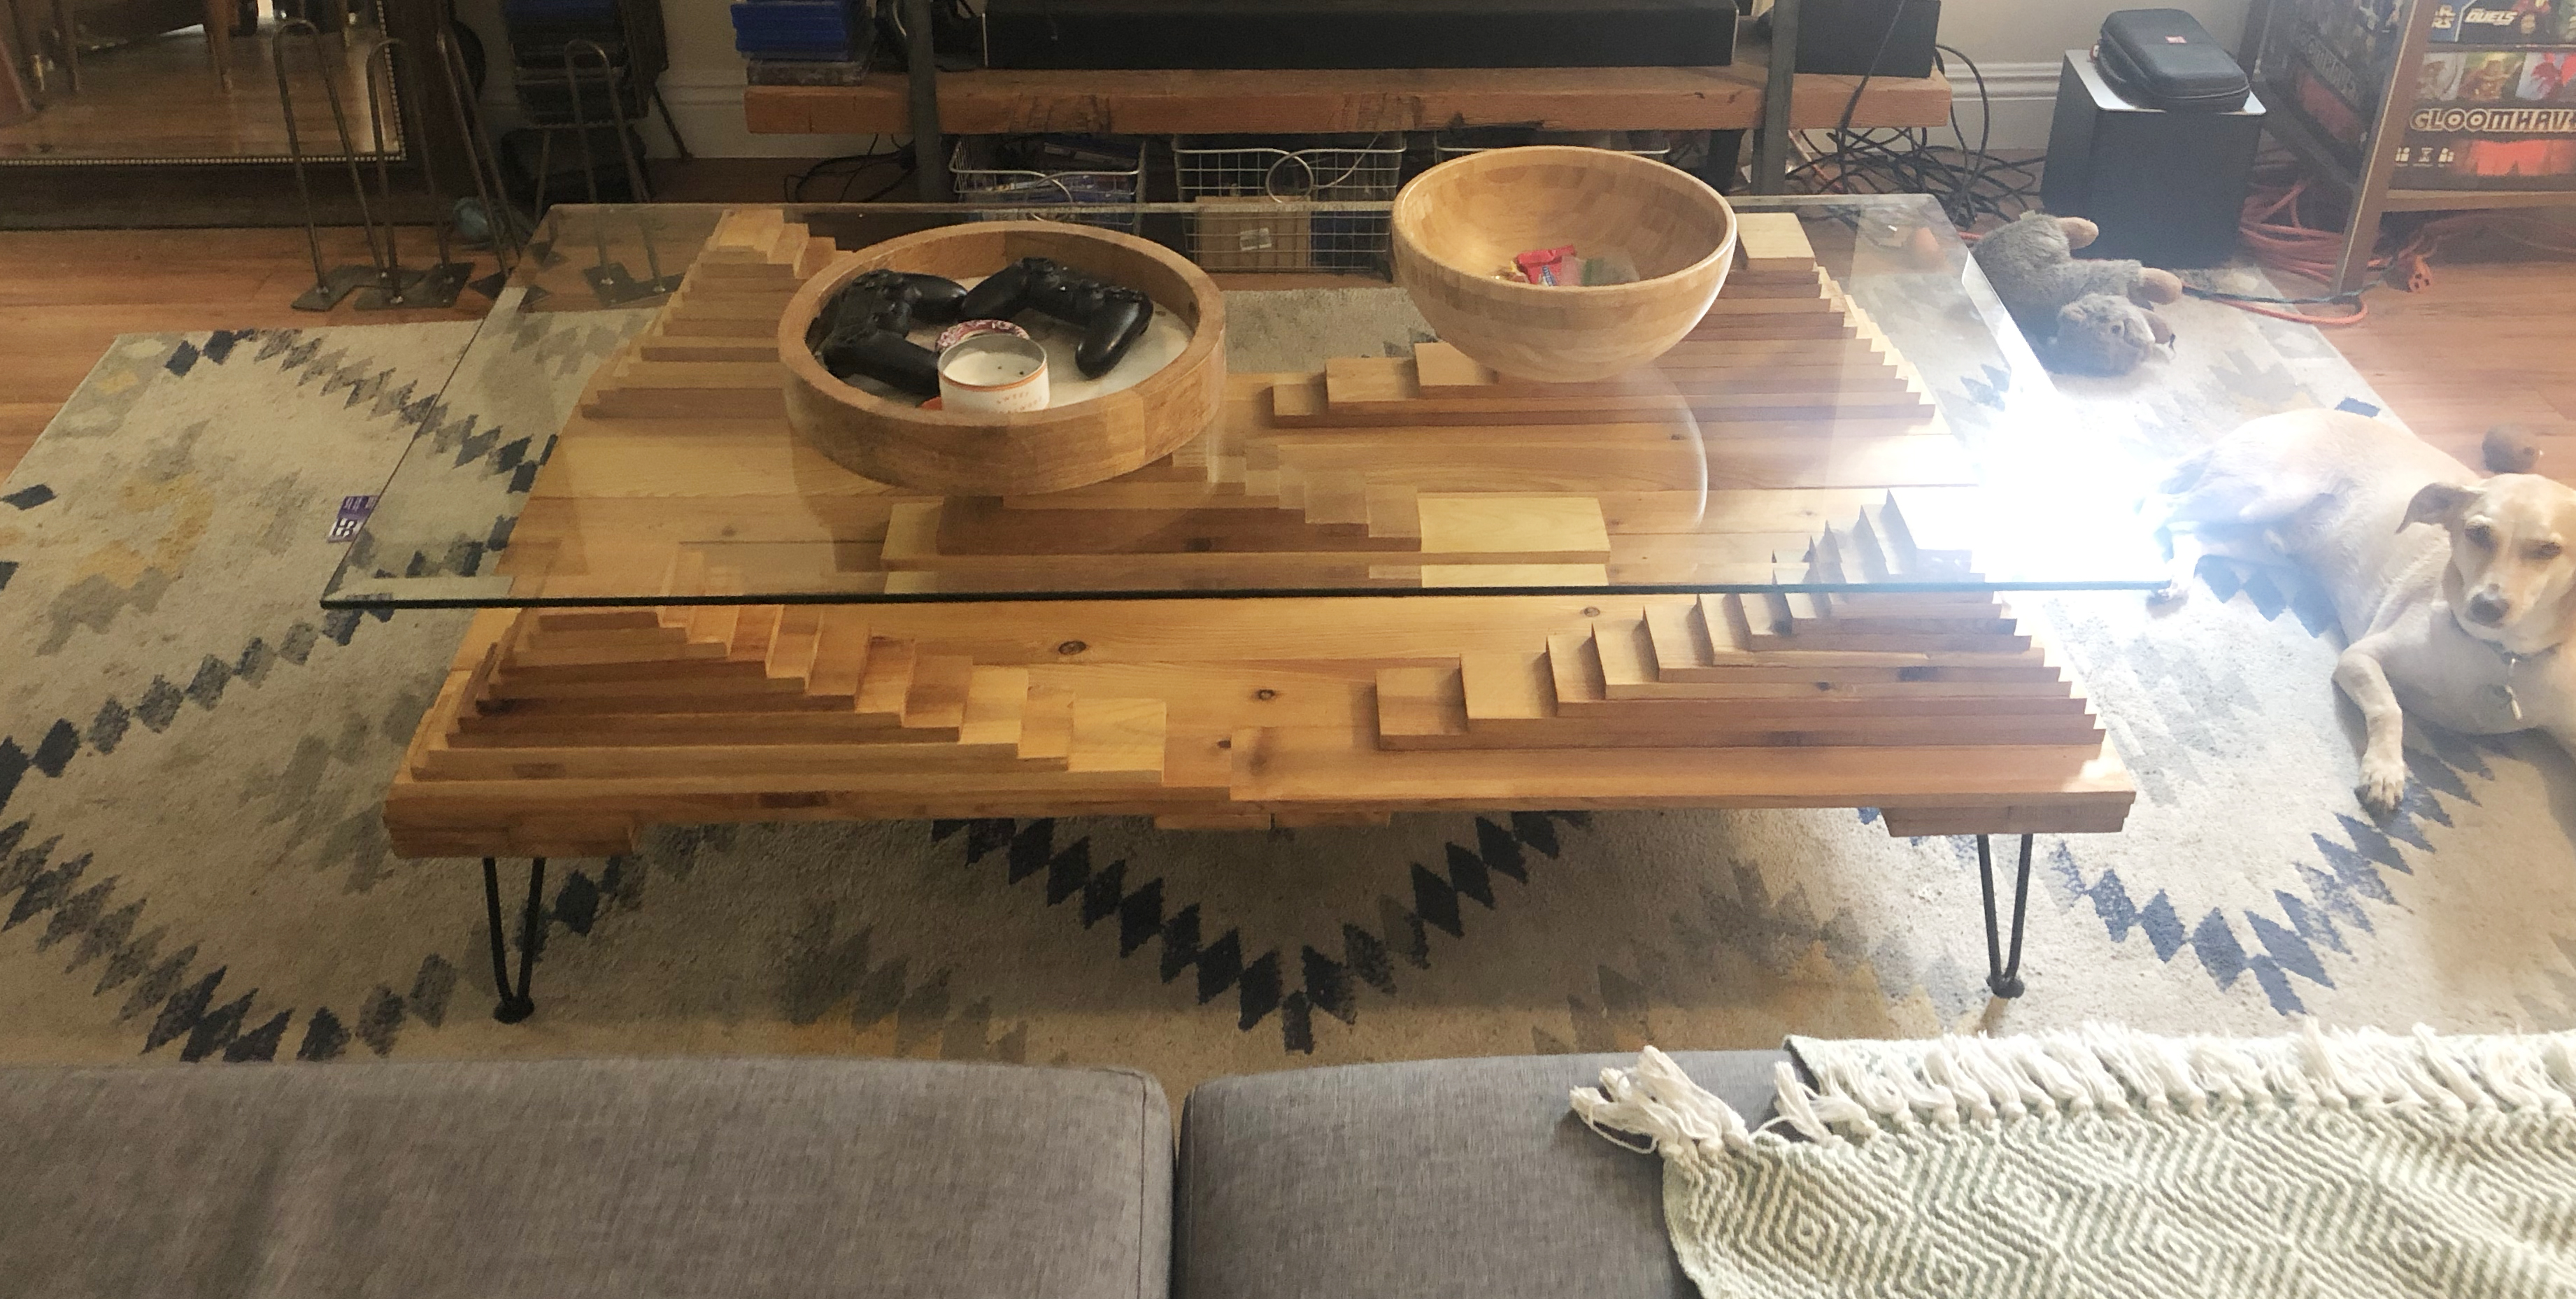 Mayan Revival coffee table